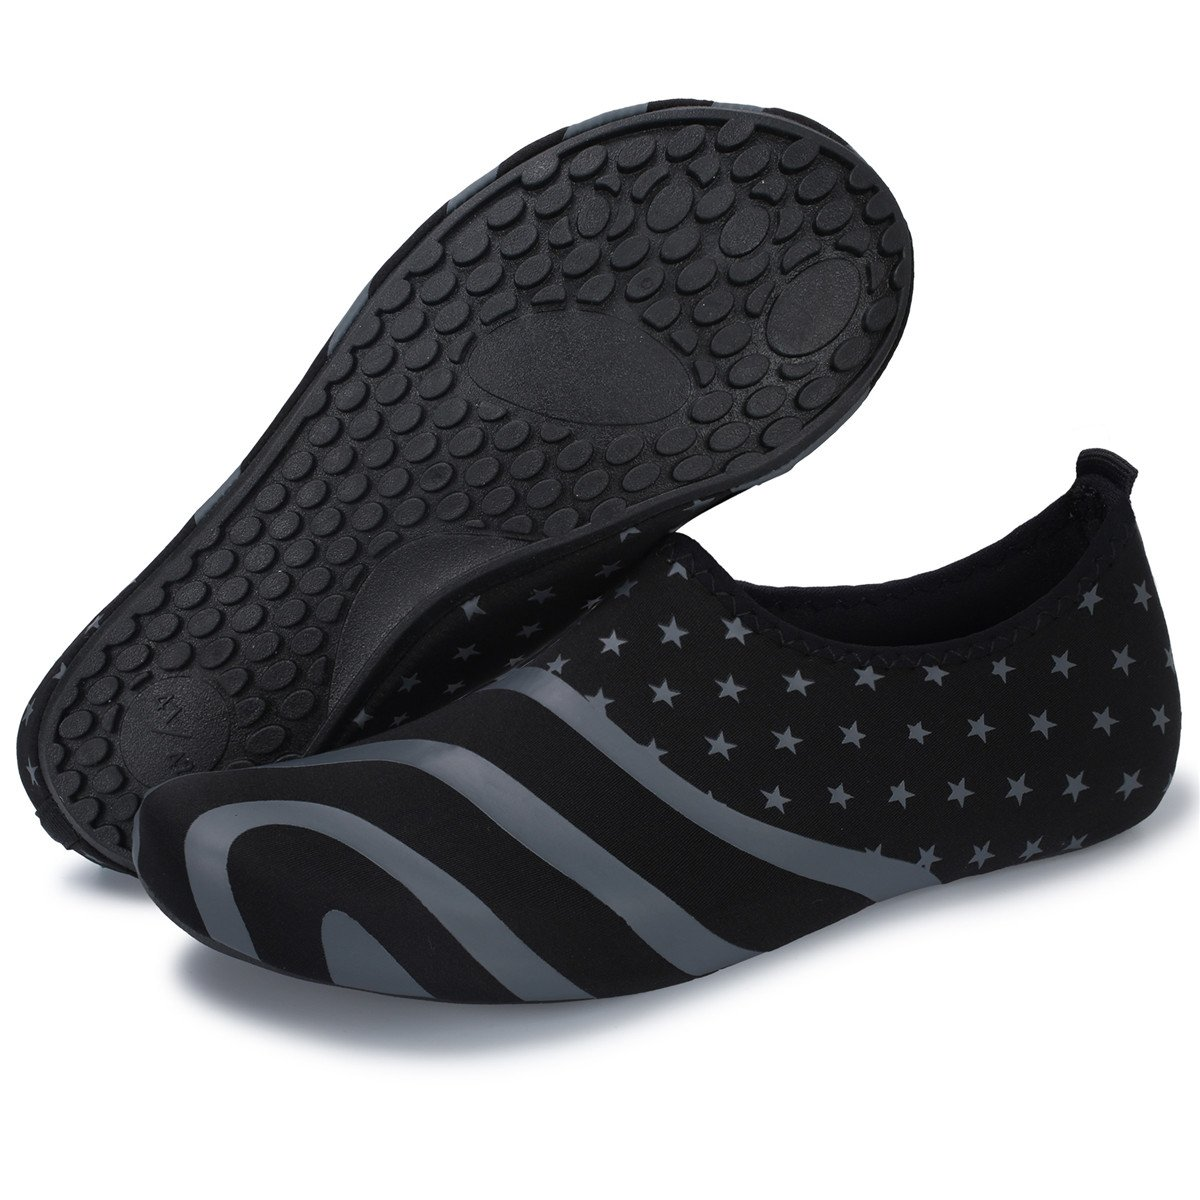 Barerun Durable Sole Barefoot Water Skin Shoes Aqua Socks for Women Men Black 6.5-7.5 B(M) US …